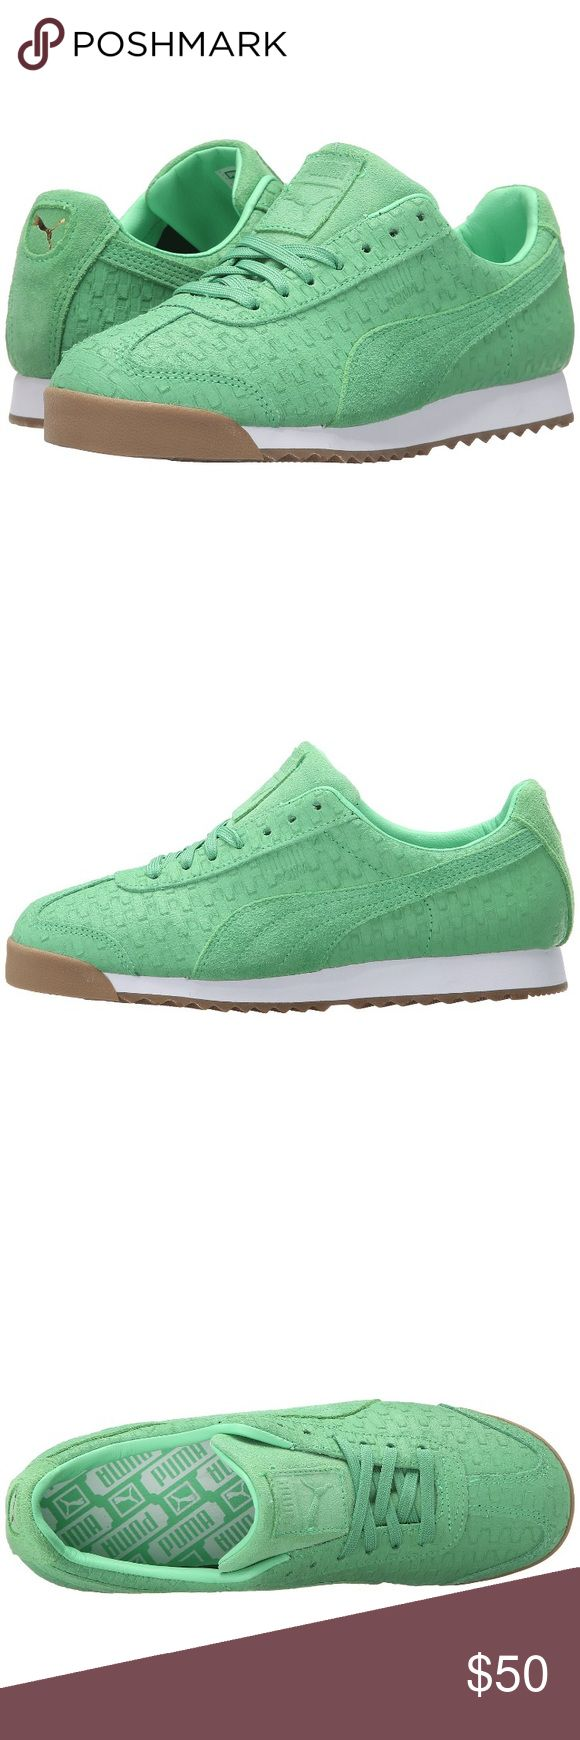 Green Puma Roma Emboss Brick Sneakers Brand new in box, never worn Such a pretty green color  Embossed leather upper with brick pattern Lightly padded tongue and collar  Puma label on the tongue  Rubber outsole for traction Very comfortable and fashionable sneaker! Reg price $70! Sold out everywhere FIRM PRICE/NO TRADES❗️ Puma Shoes Sneakers